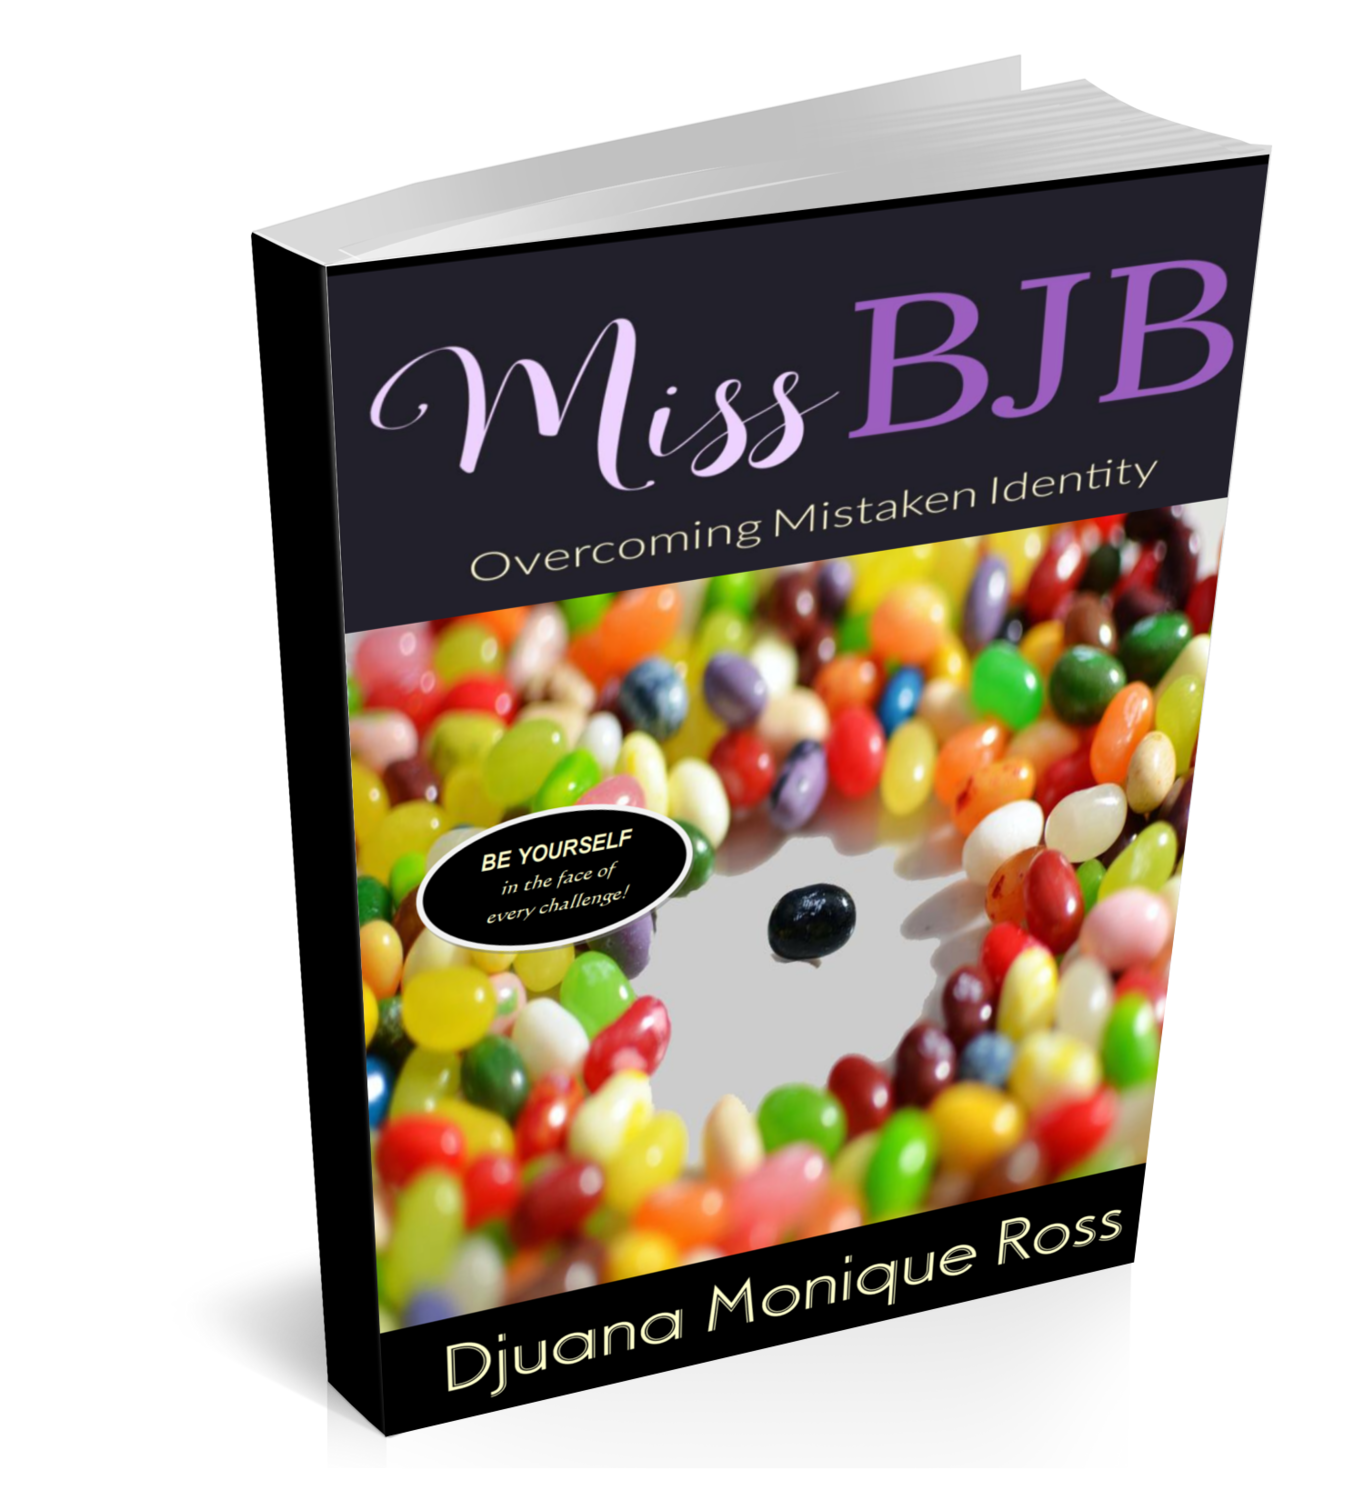 Miss BJB: Overcoming Mistaken Identity book